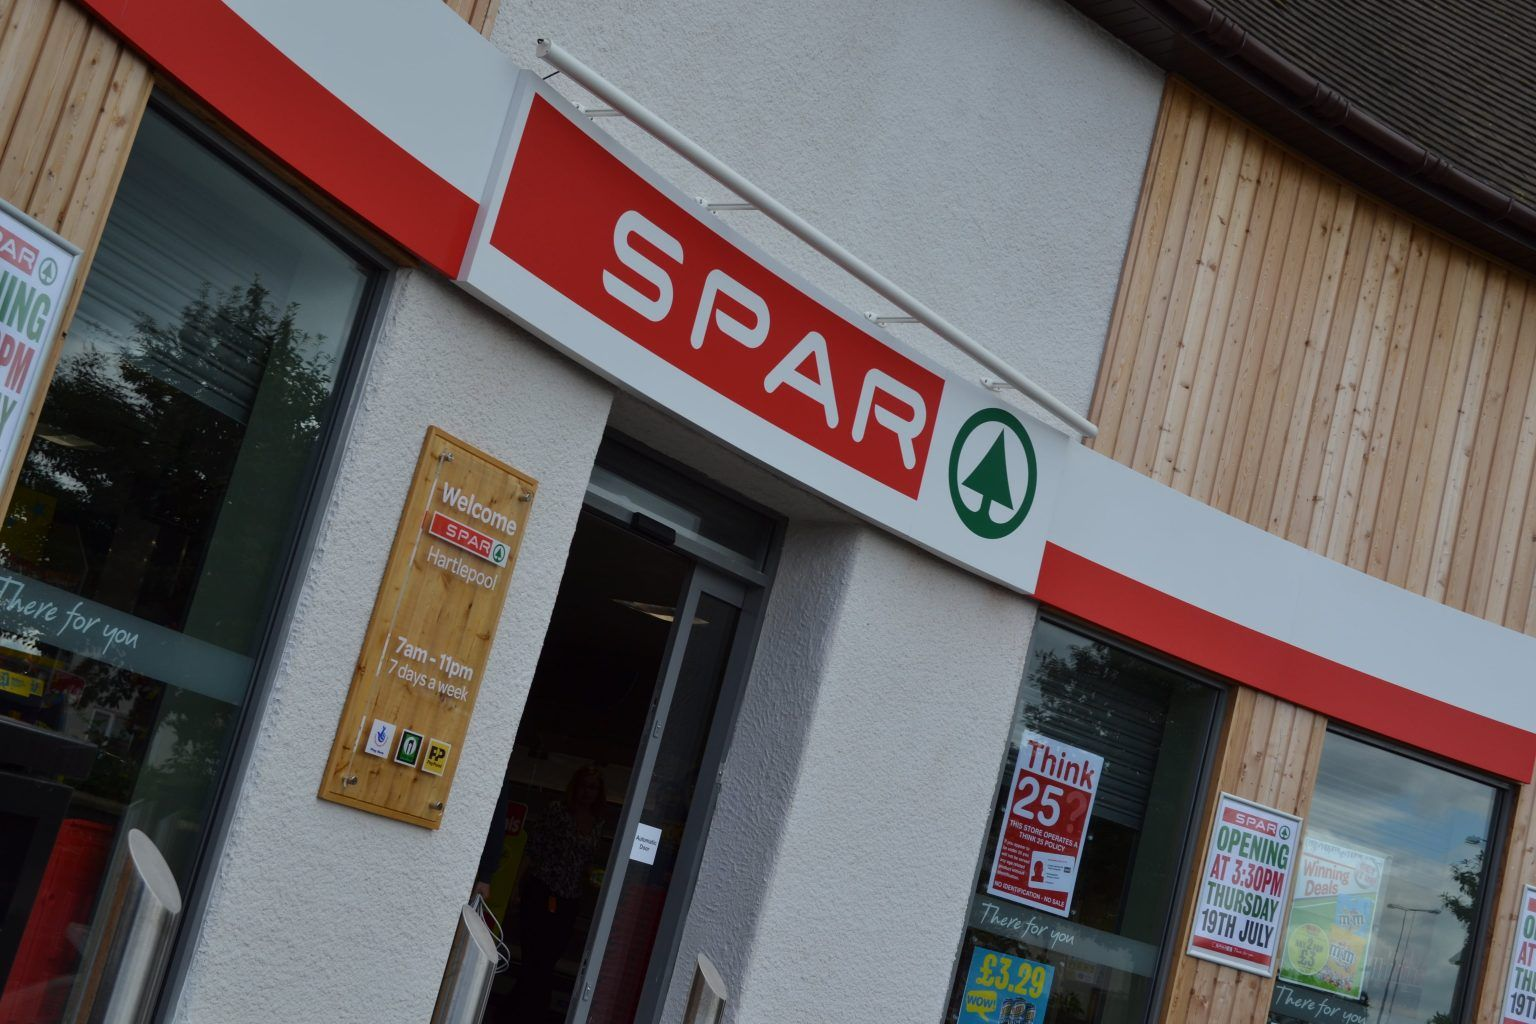 Spar curved Fascia sign